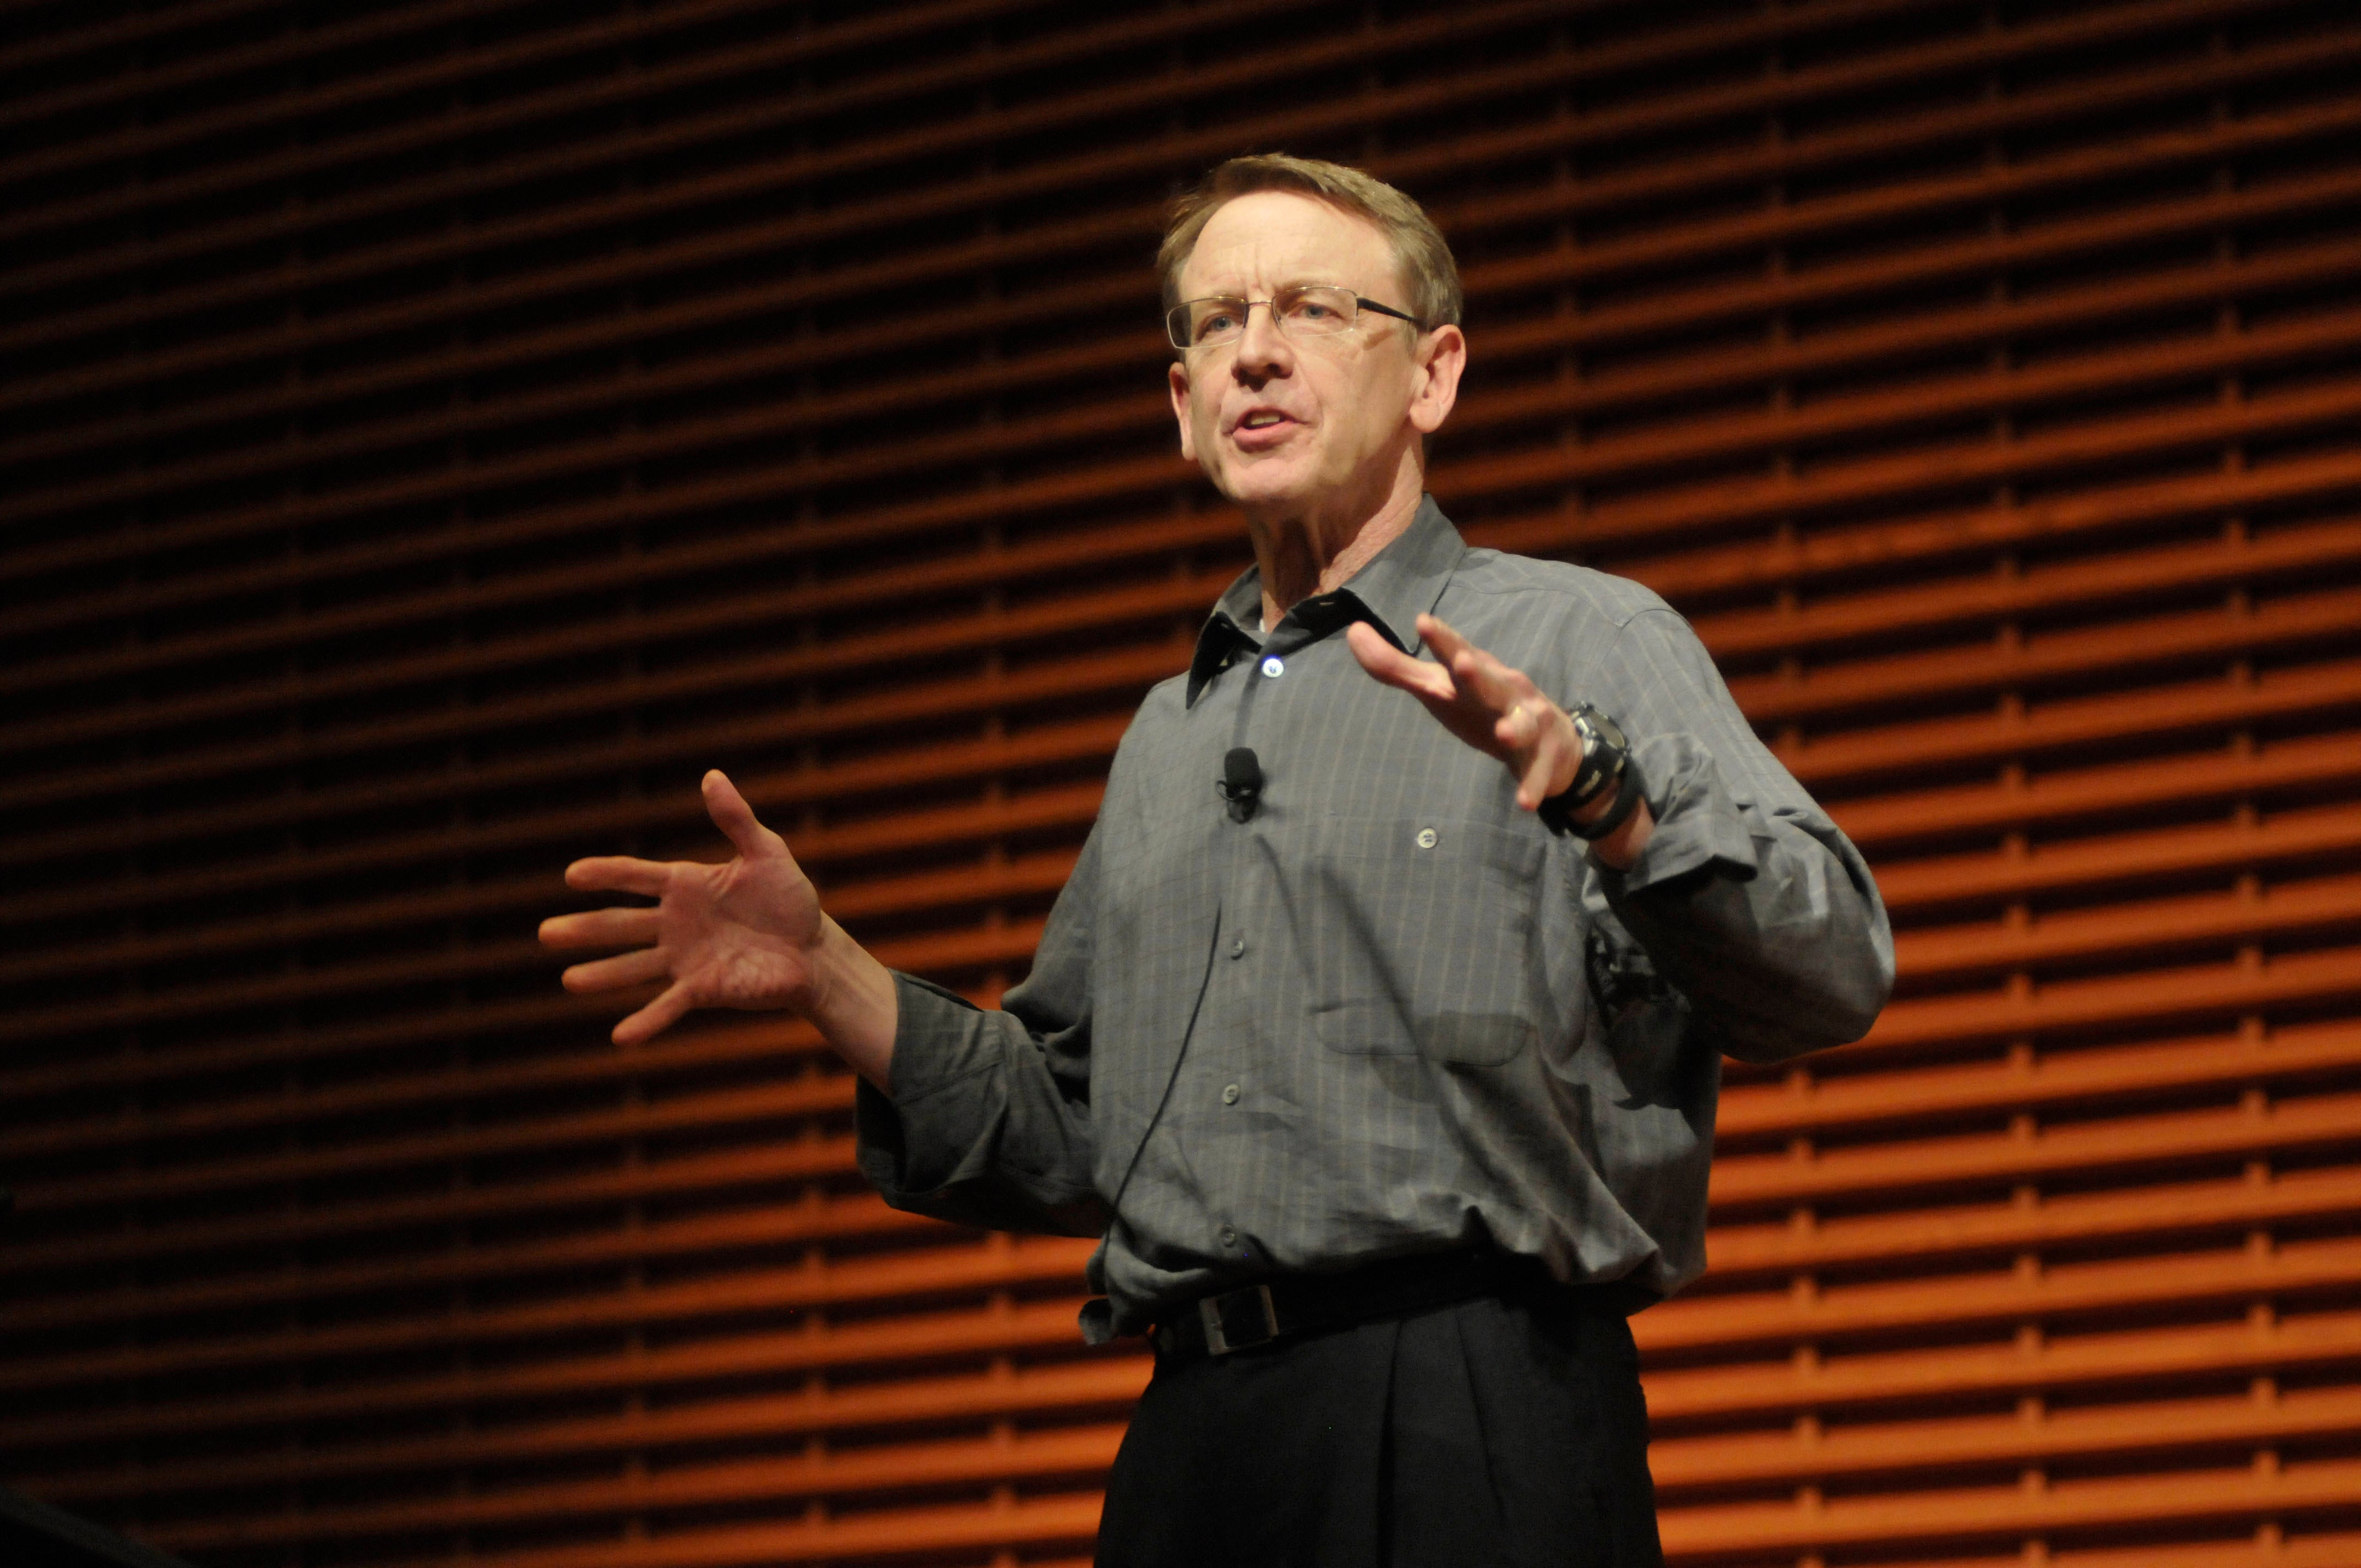 John Doerr: What to Look for When Joining a Company